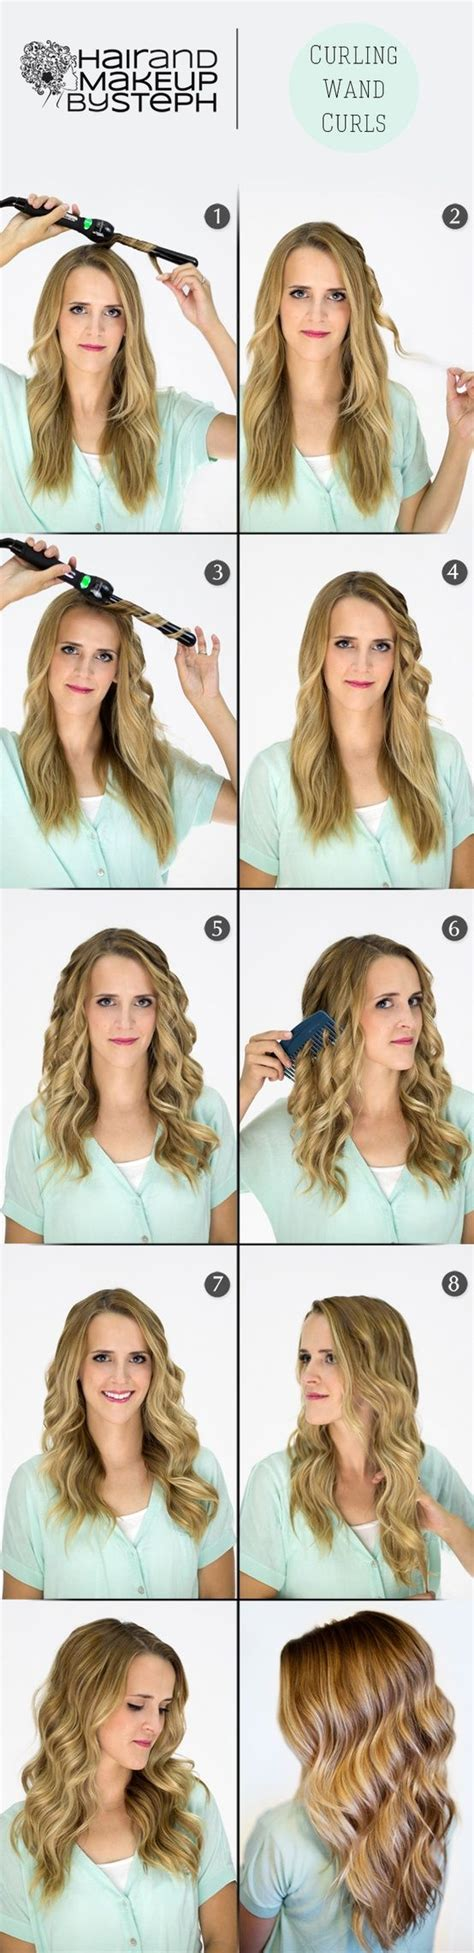 cute wand hairstyles curling wand waves hair styles pinterest curls